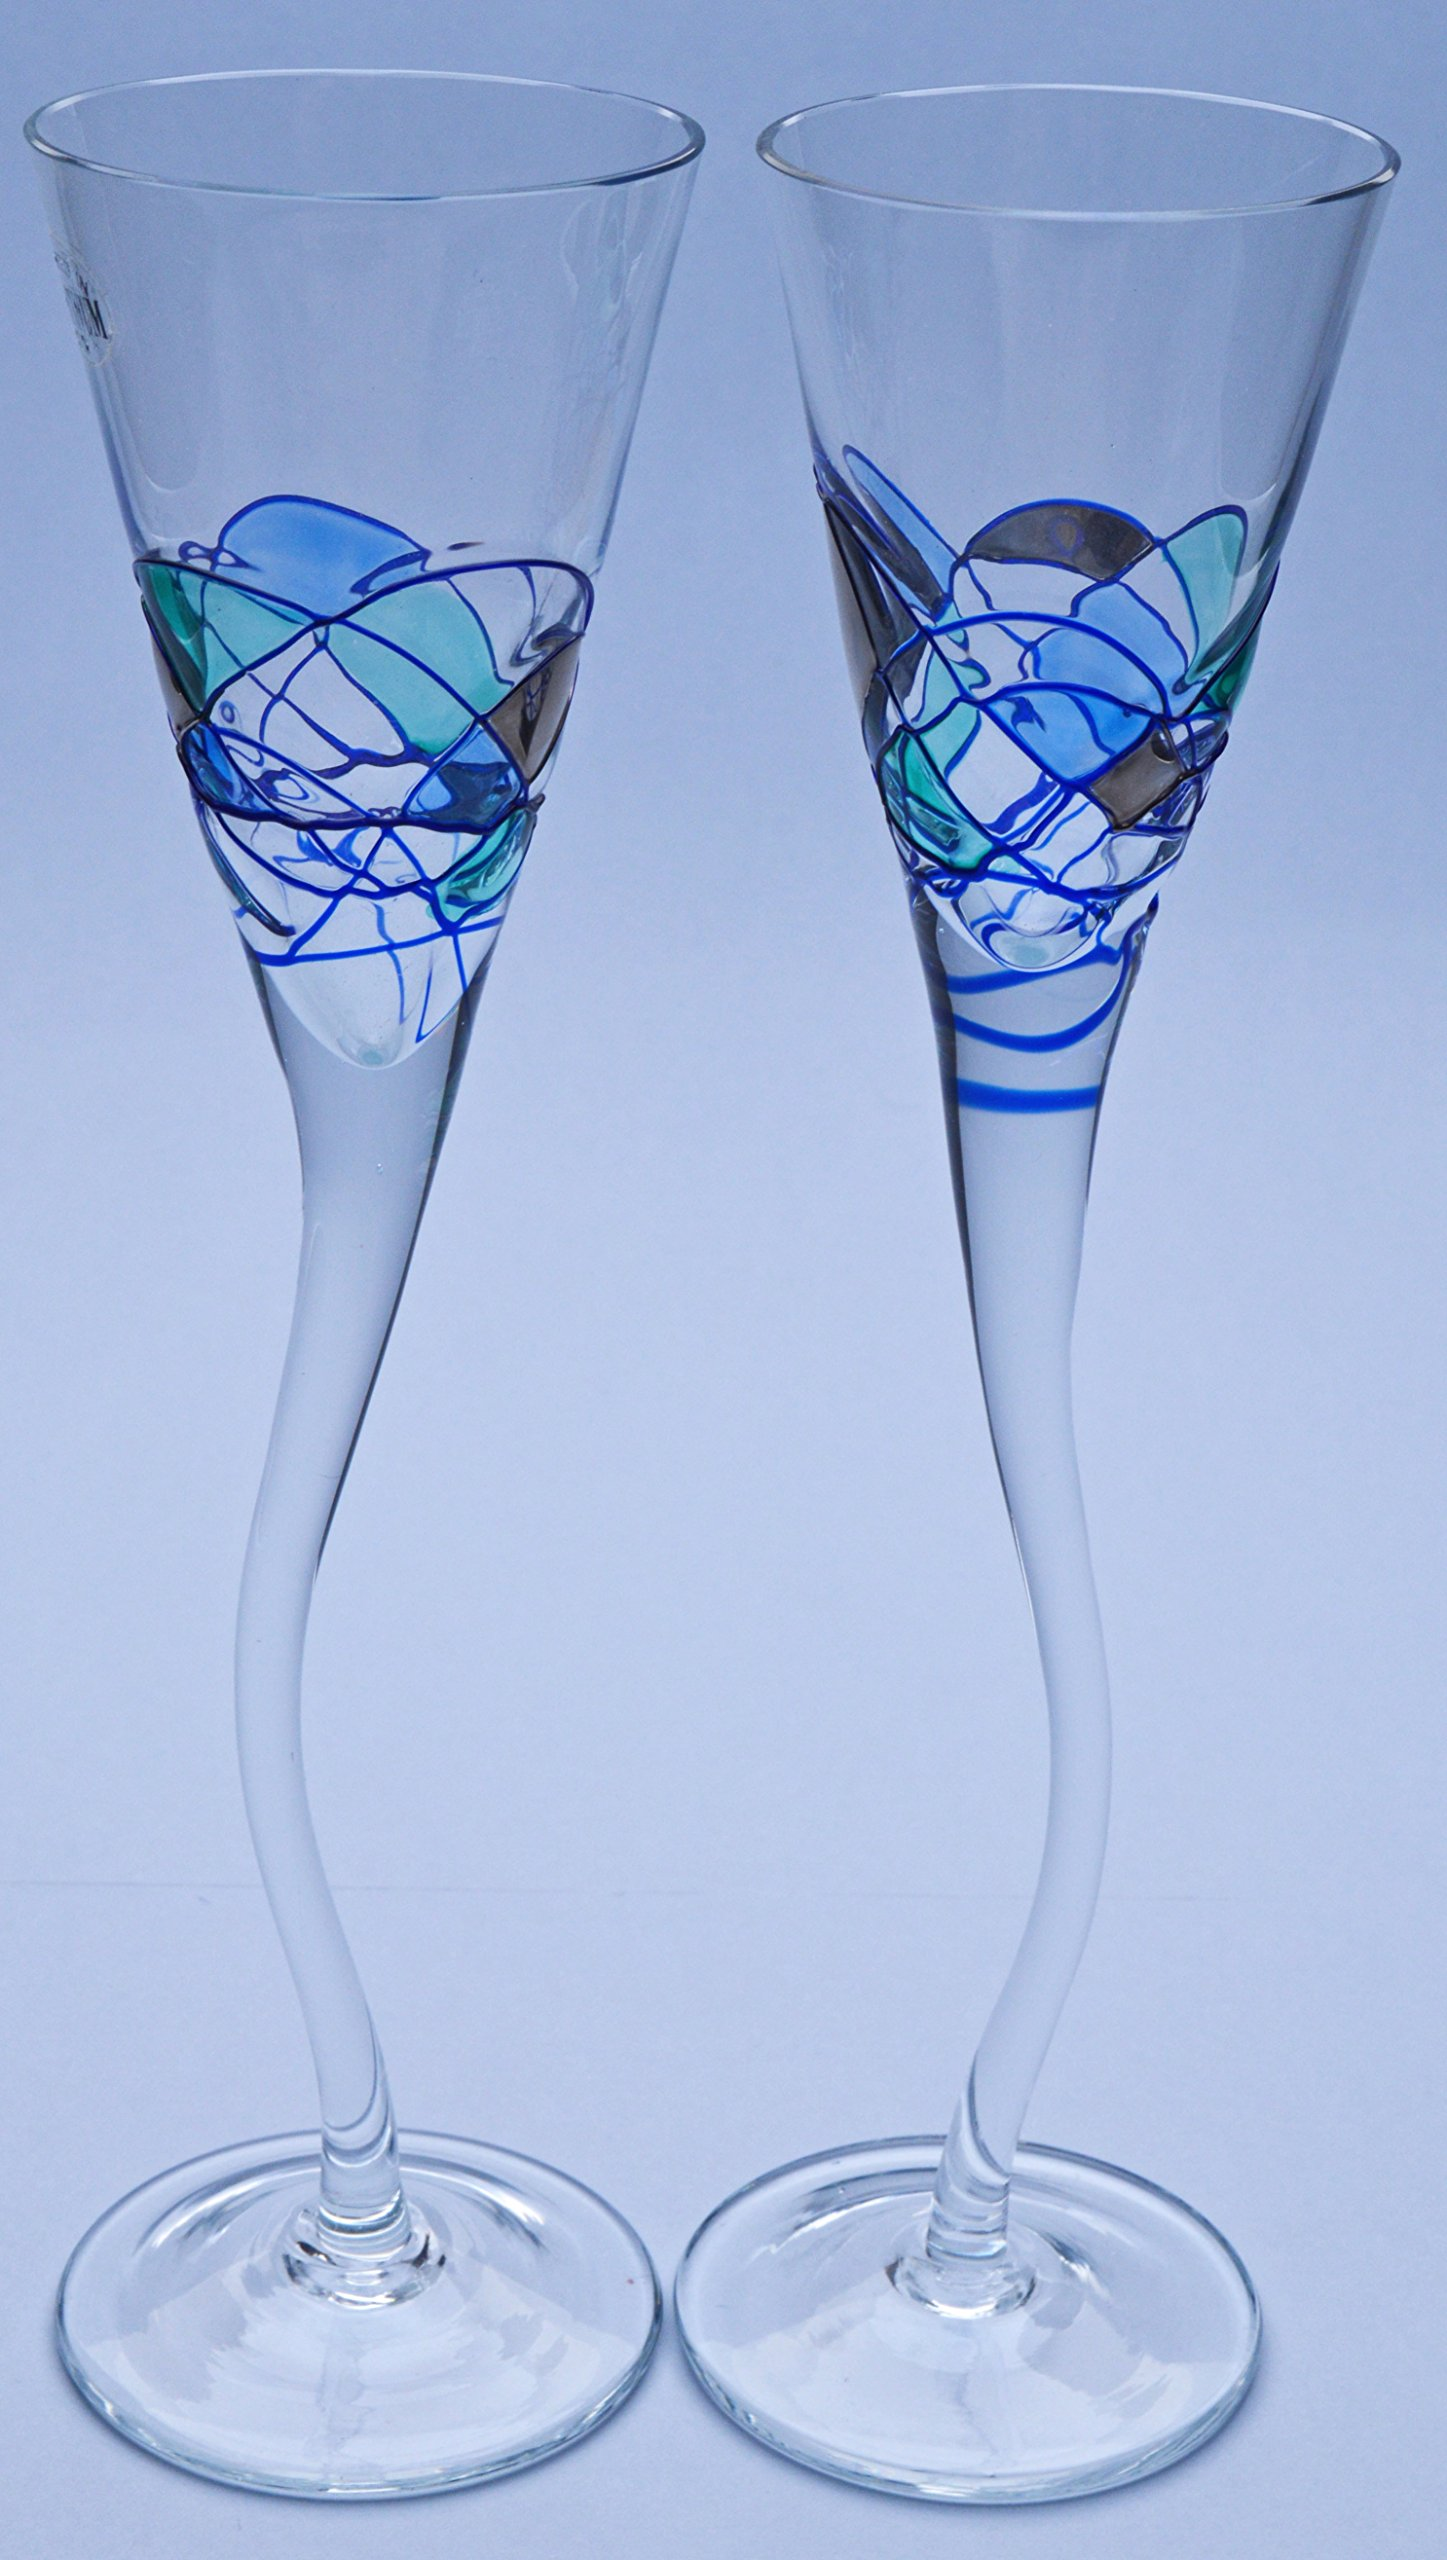 PAIR OF SHERRY GLASS GOBLET ROYAL AQUAMARINA, unique glass goblet of artisanal production, manufactured with blown glass technique and handpainted. 10,43'' x 8,66'' x 3,15''